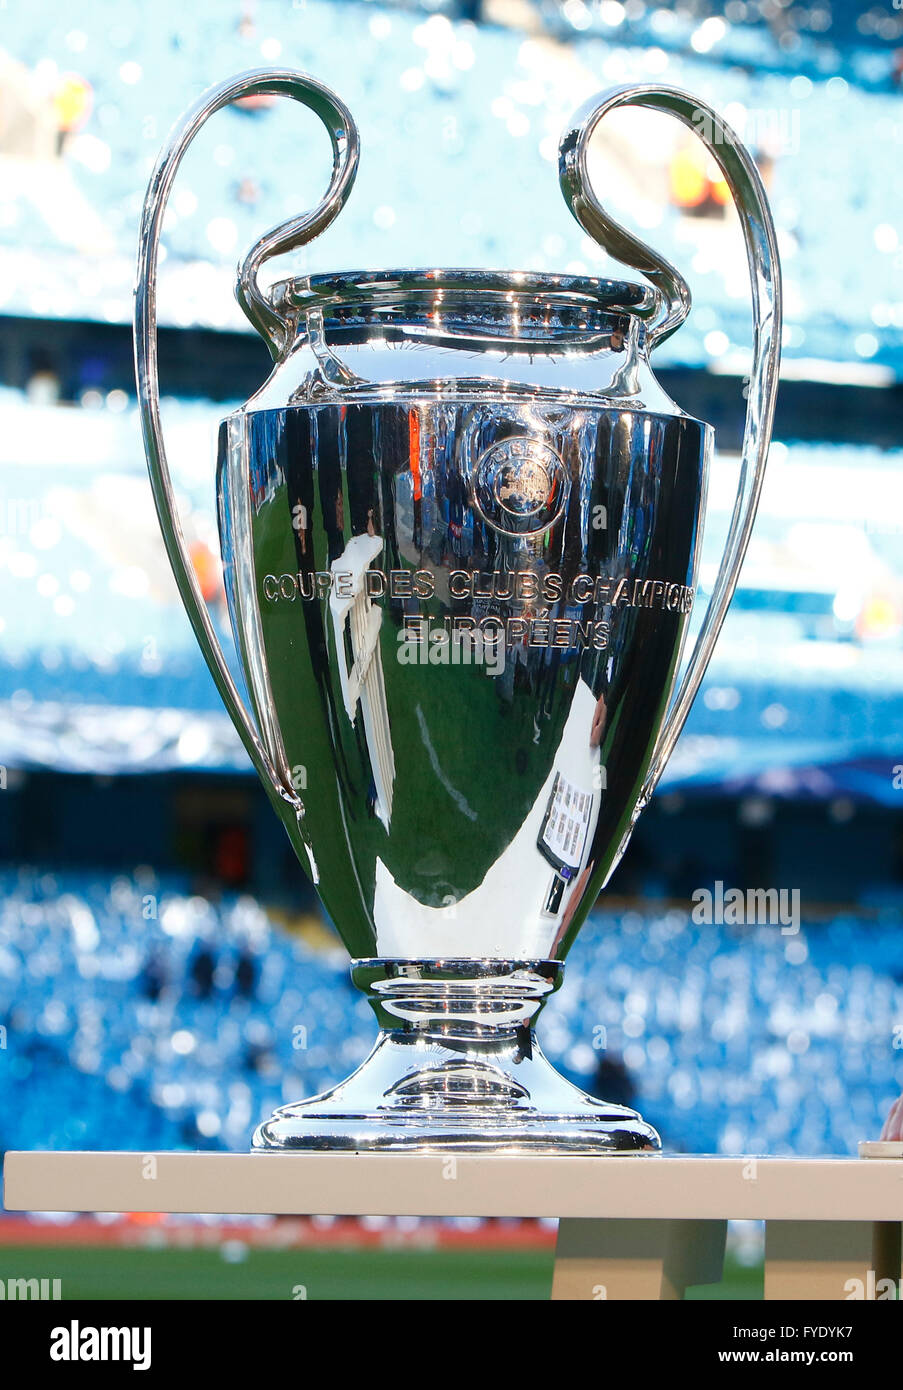 26th Apr 2016 UEFA Champions League Manchester City Versus Real Madrid The Trophy Pitchside Before Tonights Game